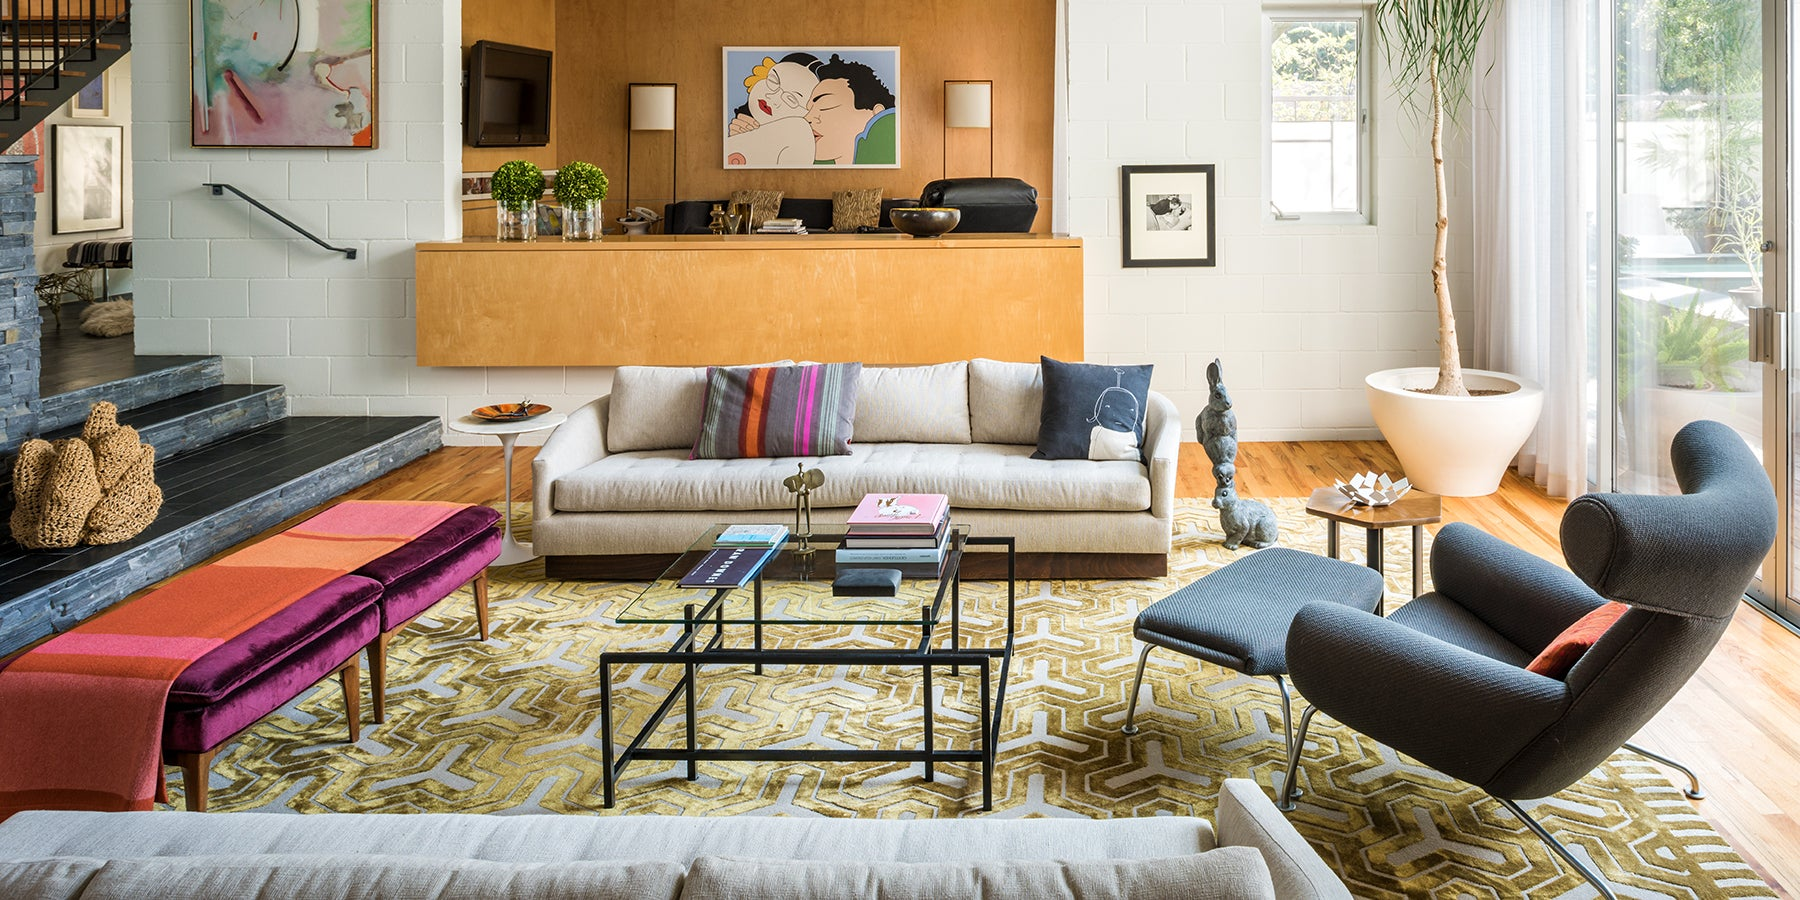 lynn goode boosts playful design in houston 1stdibs introspective